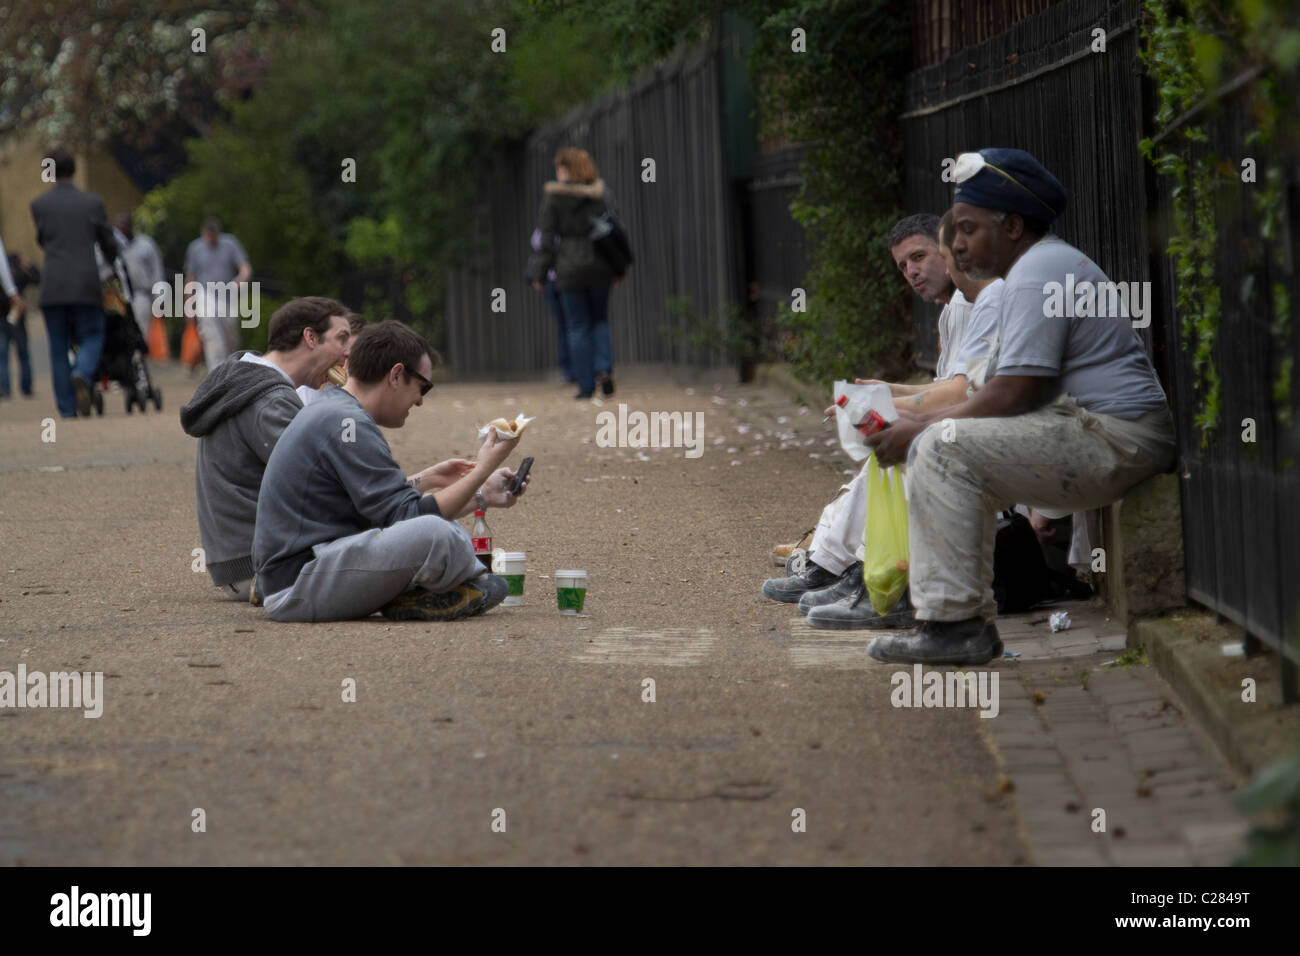 Builders construction workers taking lunchbreak Green Park London - Stock Image